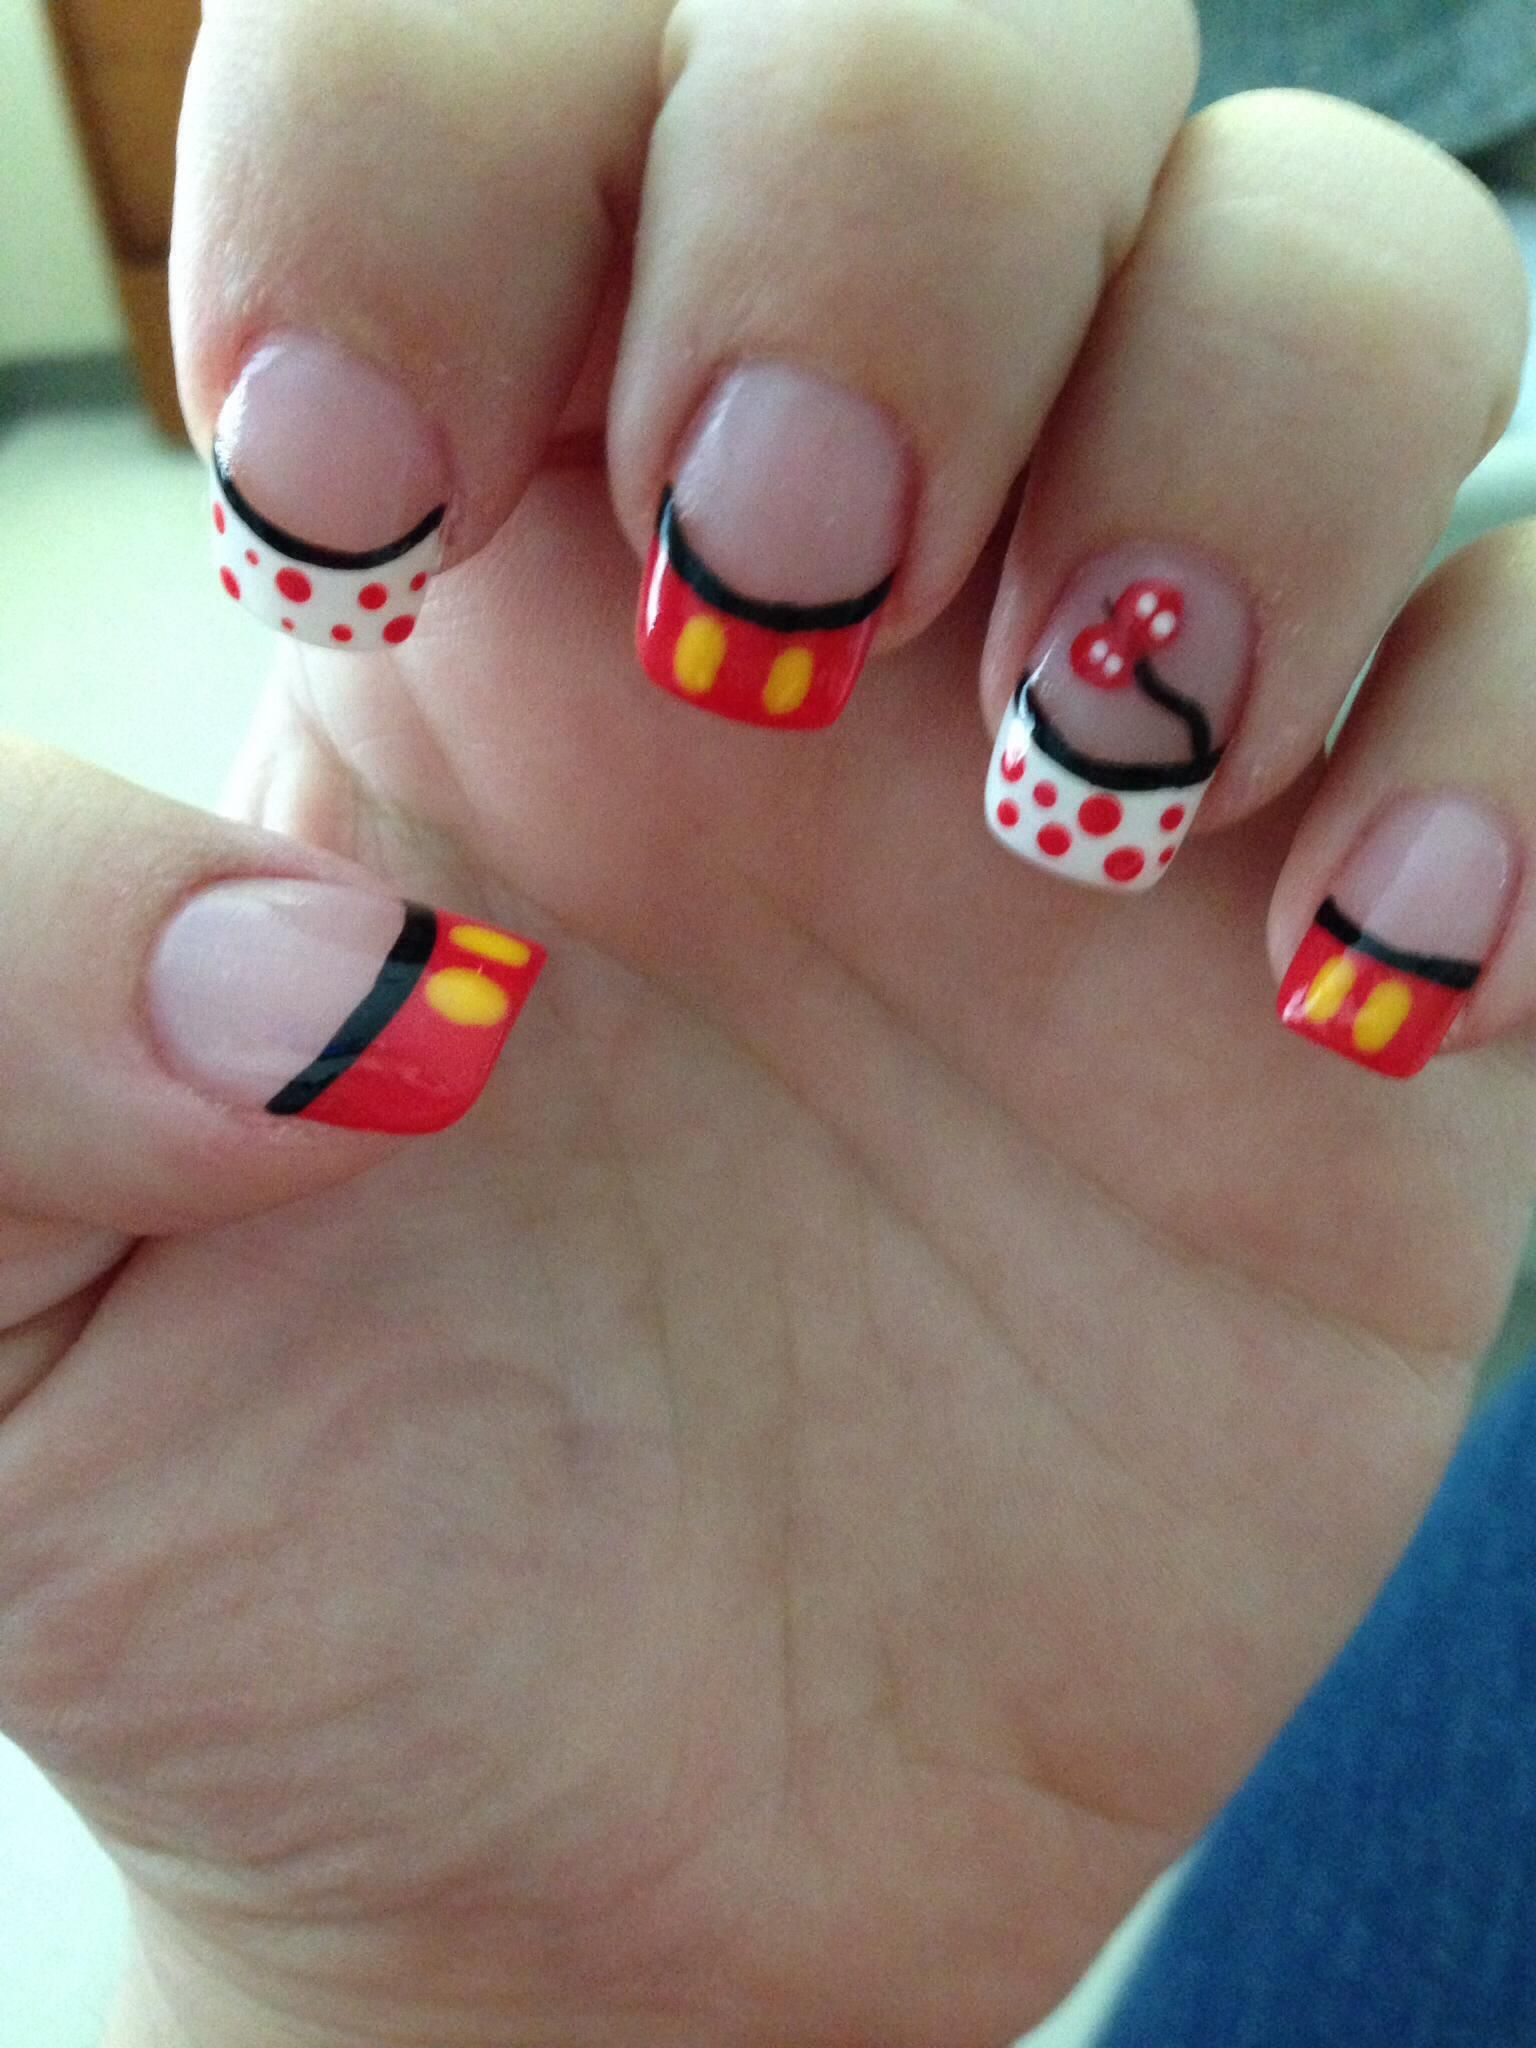 The Astonishing Disney nail art Photograph